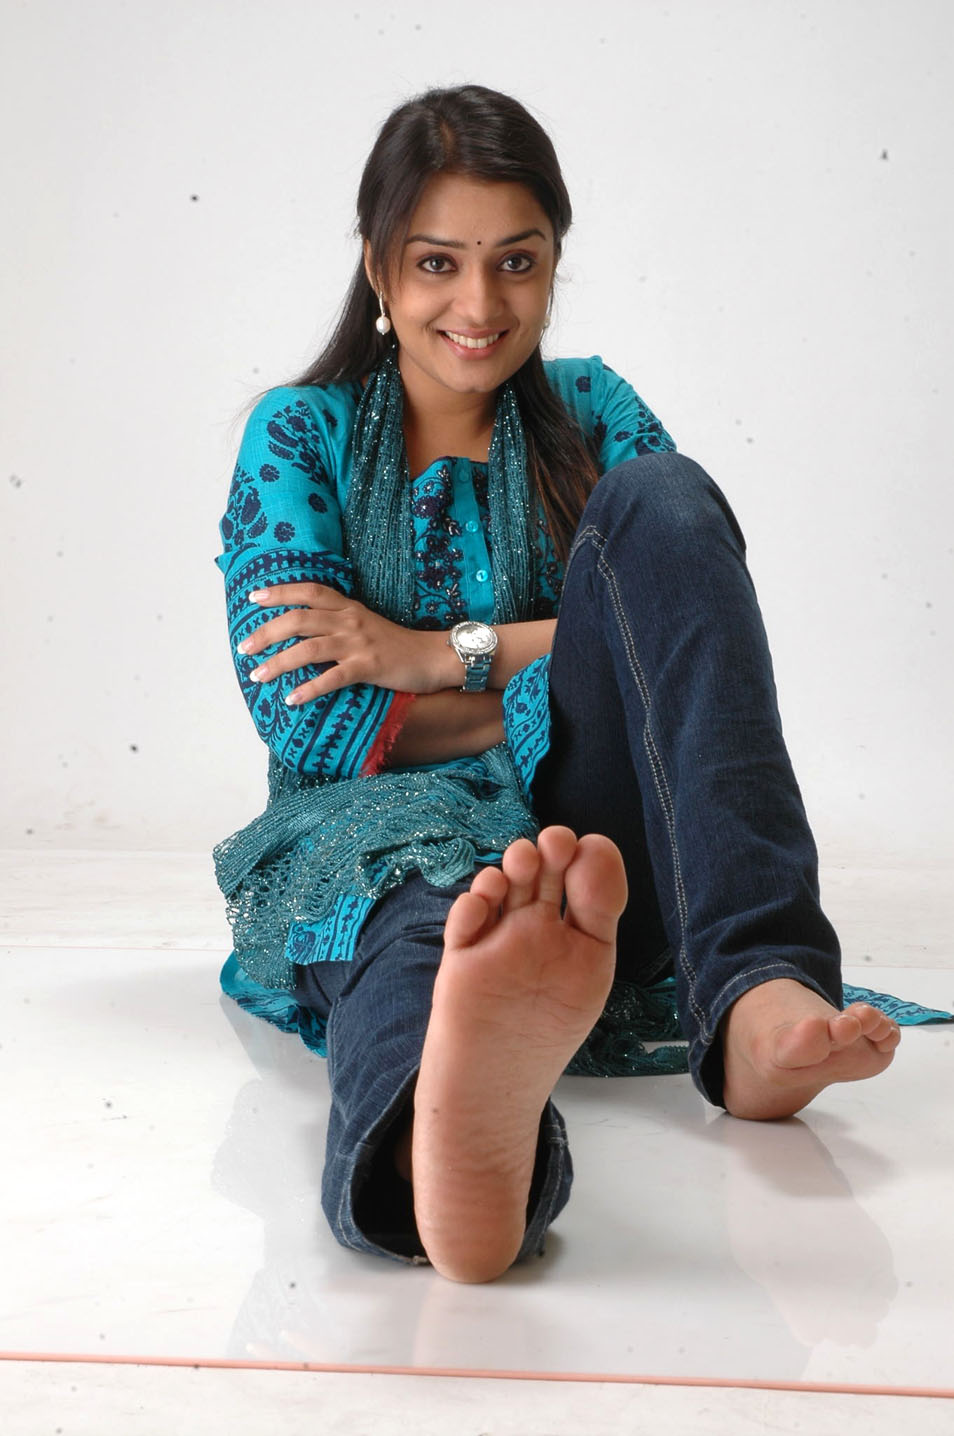 Portman clit indian teen feet girls anal